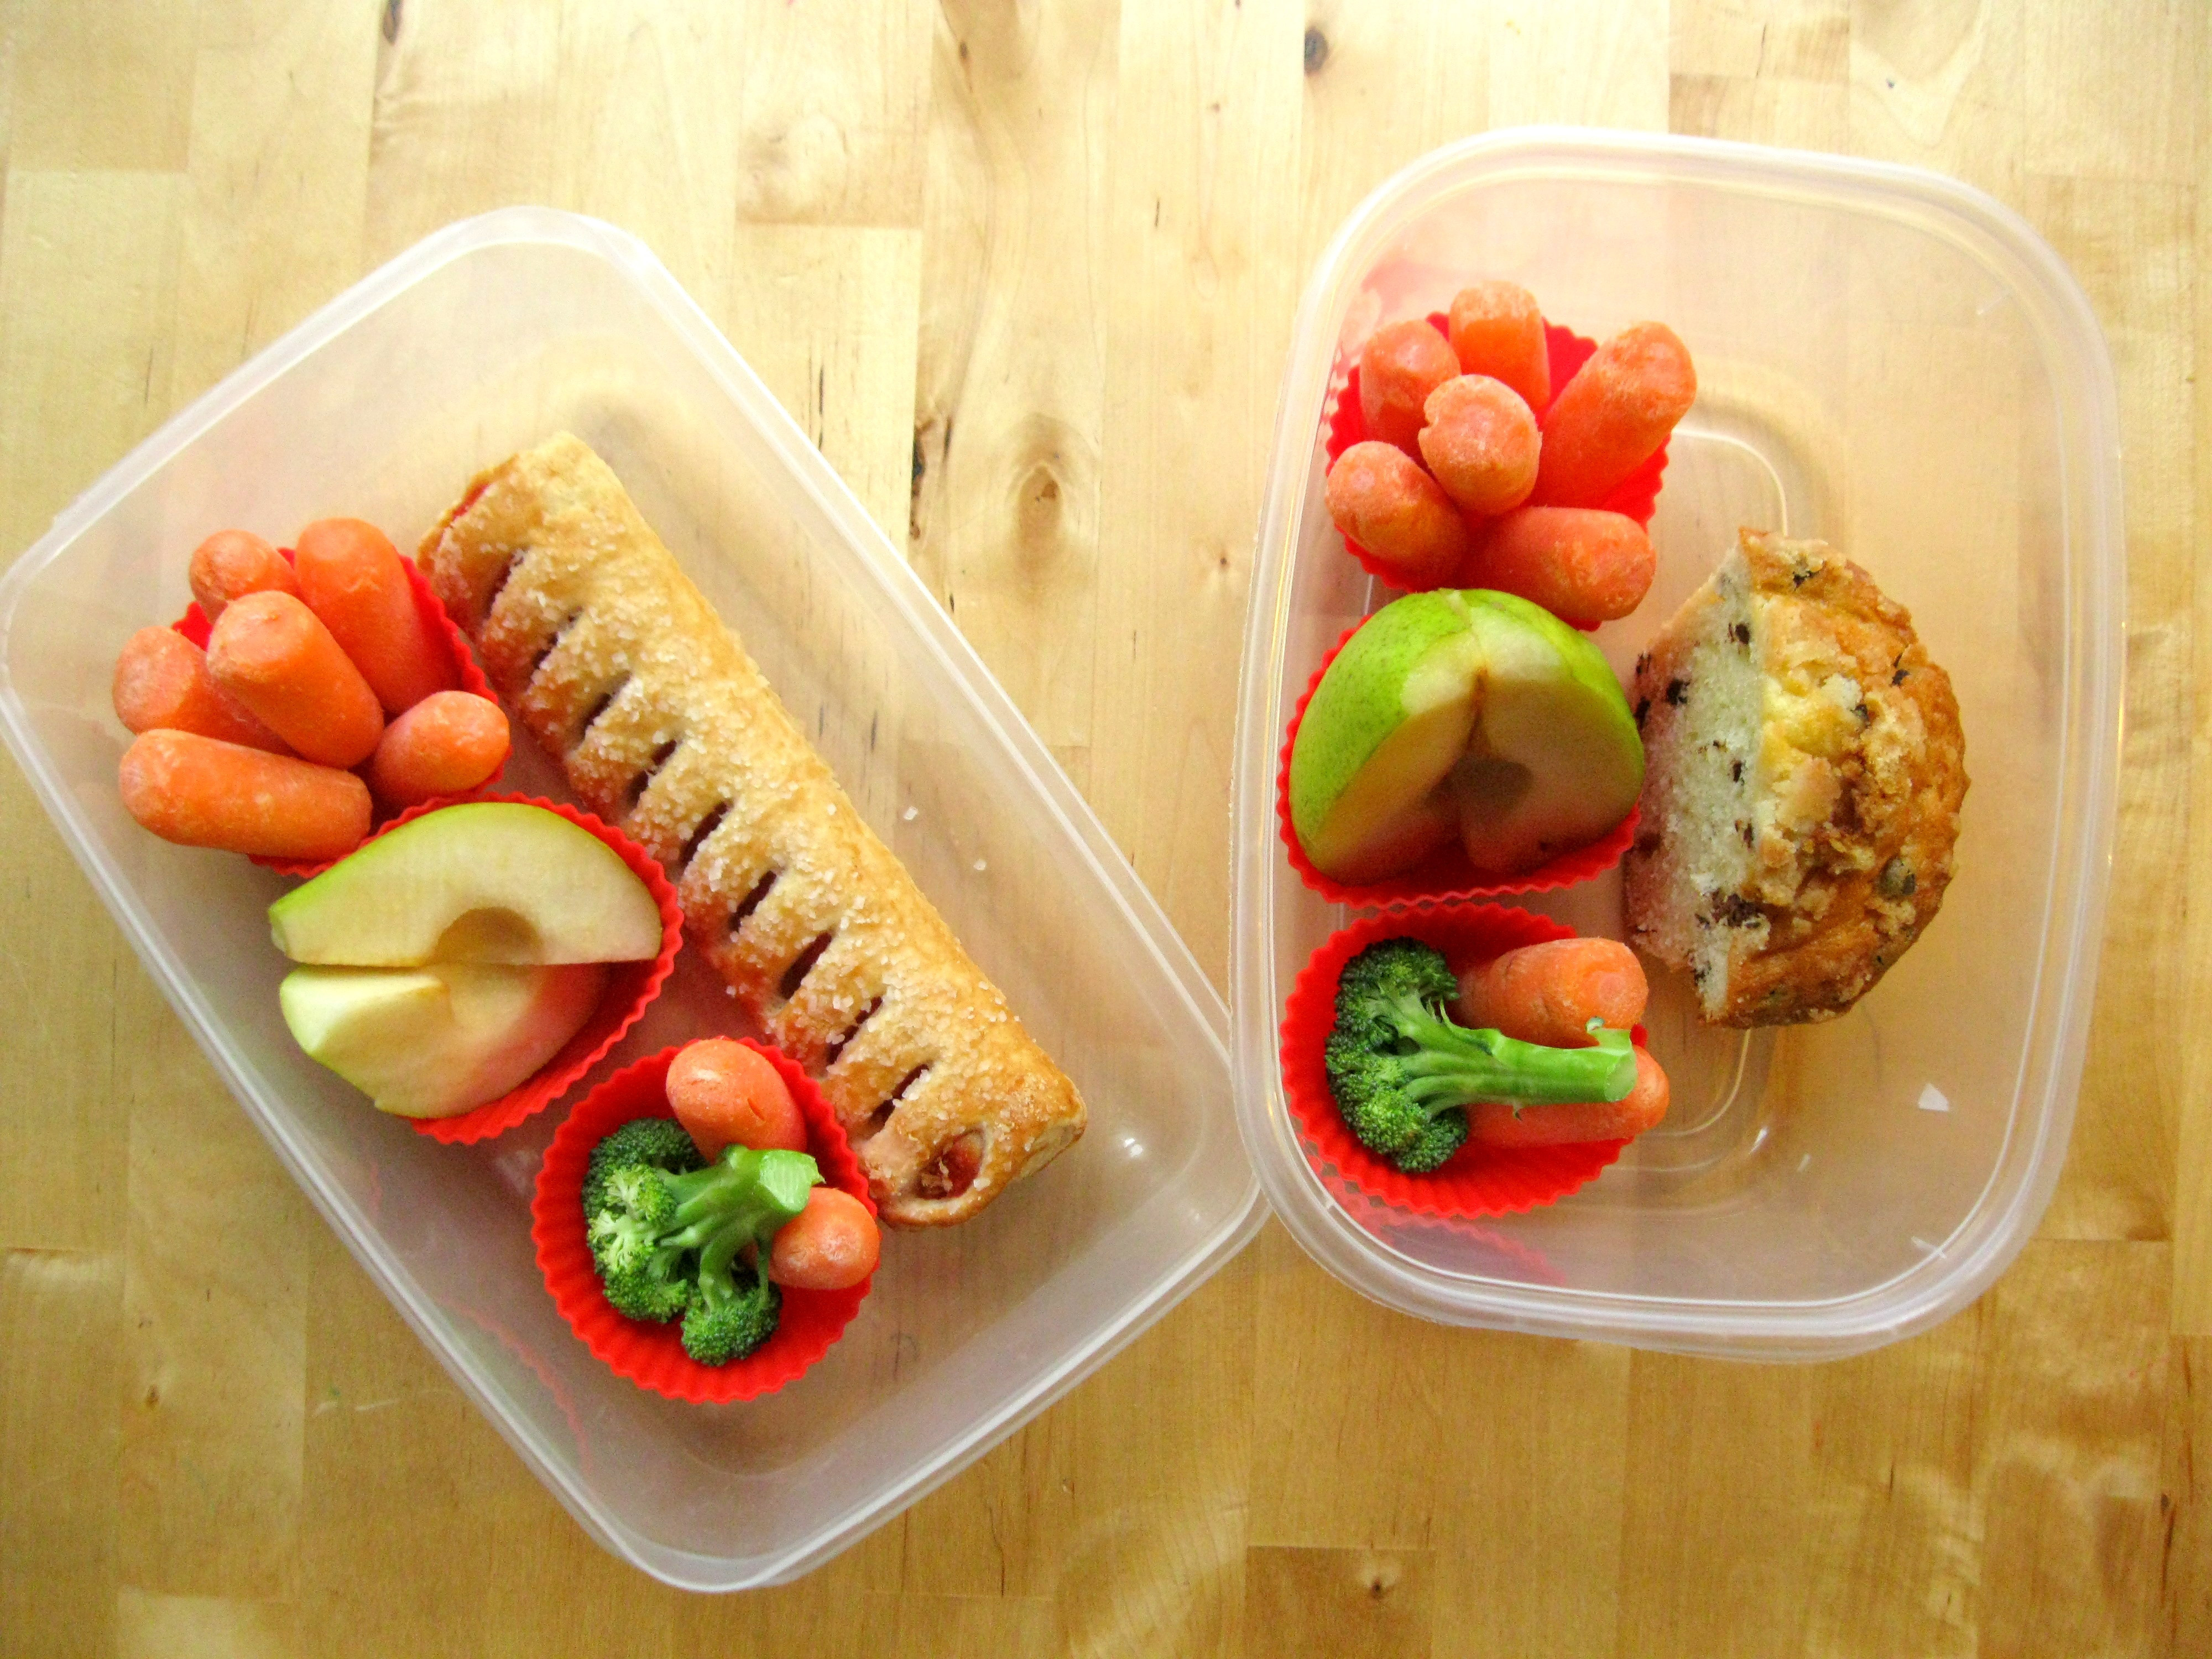 Healthy Fruit Snacks For Kids  In the Kitchen Self Serving Snack Box Tutorial and